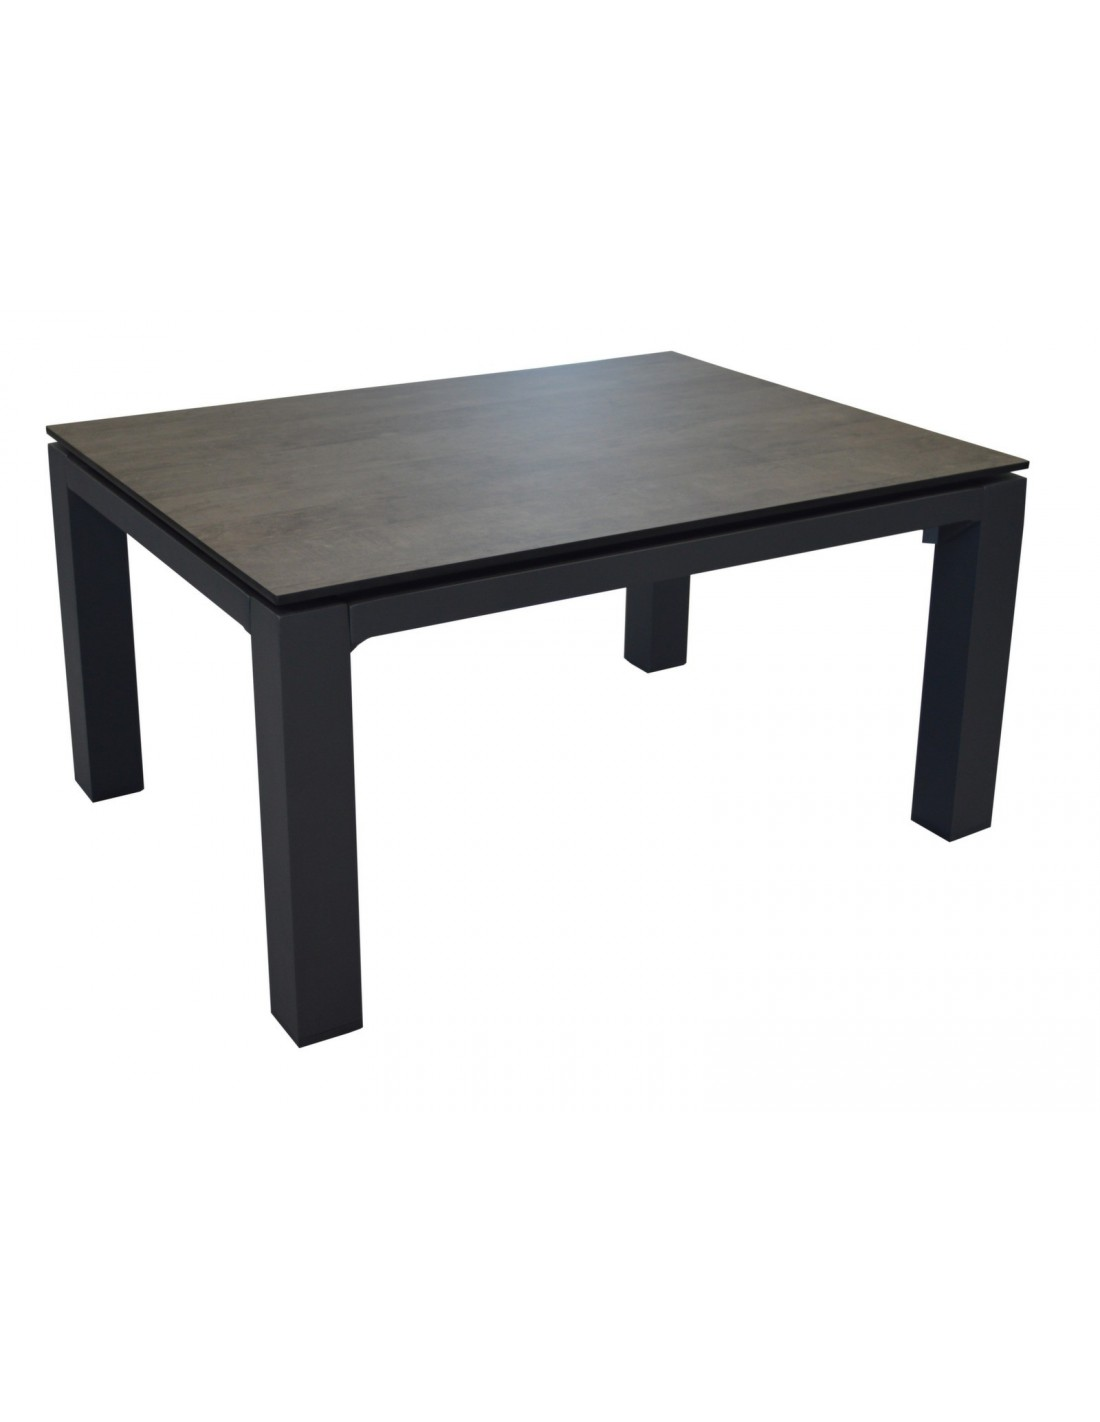 table basse stoneo retangle 80 x 60 cm coloris au choix oc o. Black Bedroom Furniture Sets. Home Design Ideas